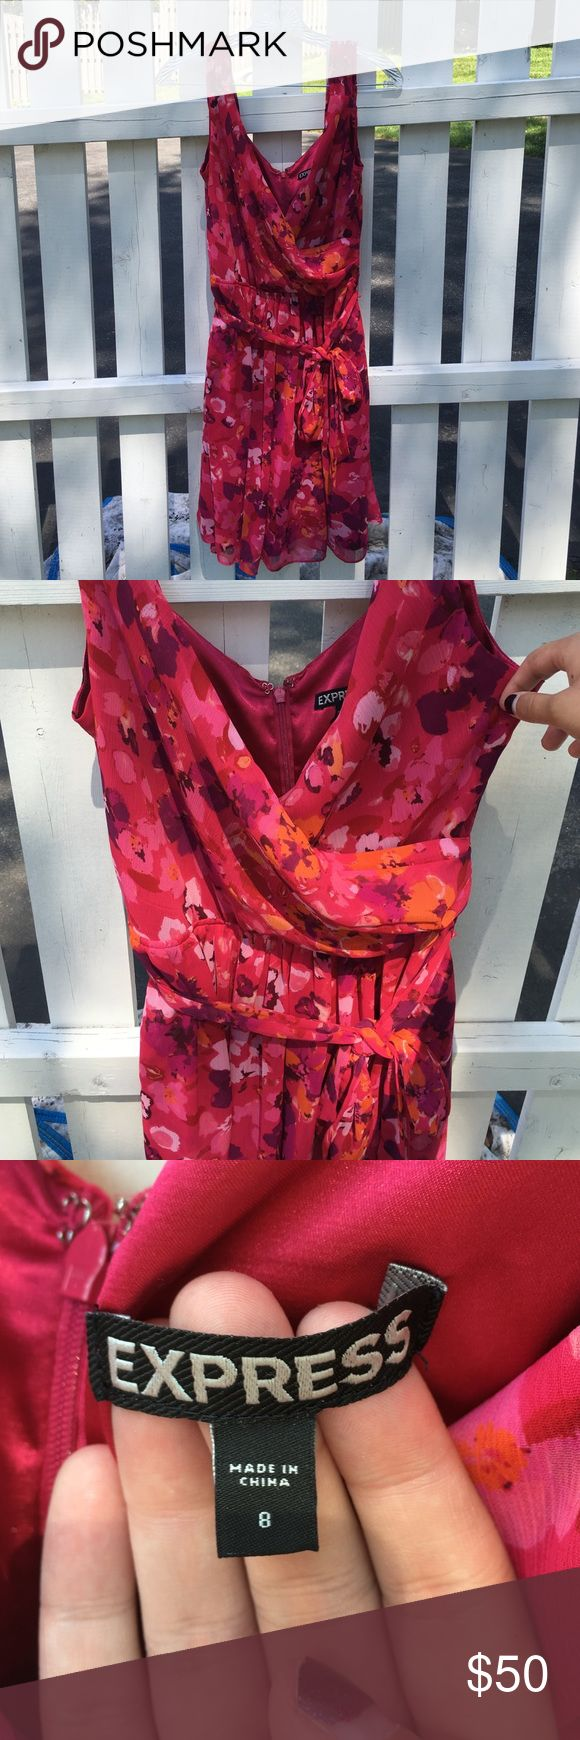 Express Flower Dress Great condition, worn once, zip closure Express Dresses